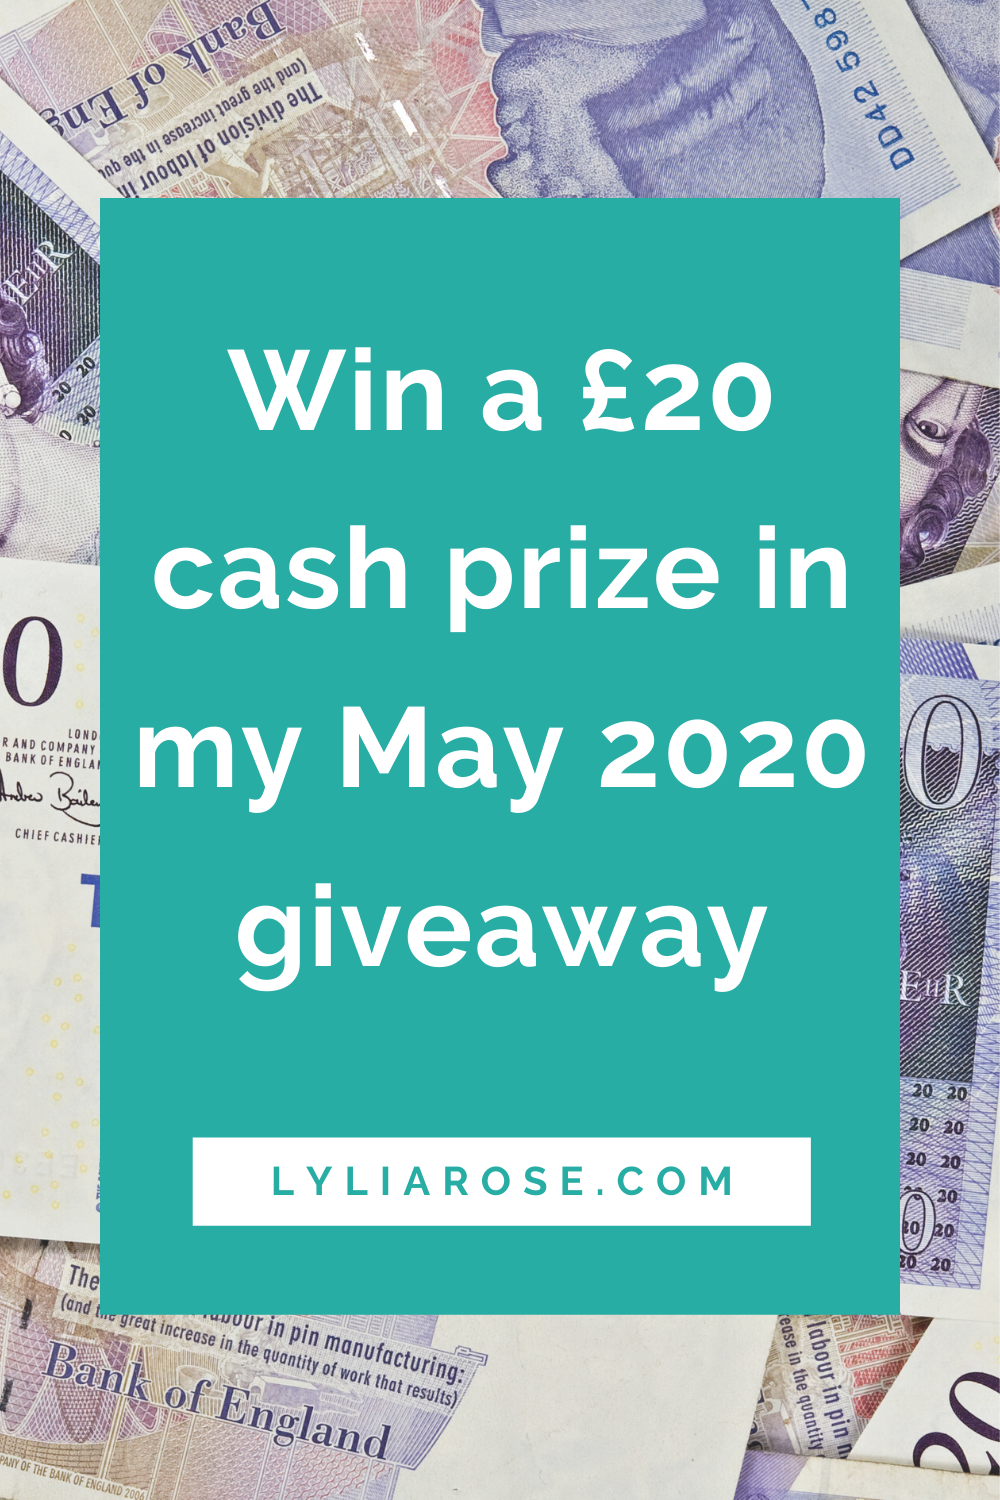 Win a £20 cash prize in my May 2020 giveaway